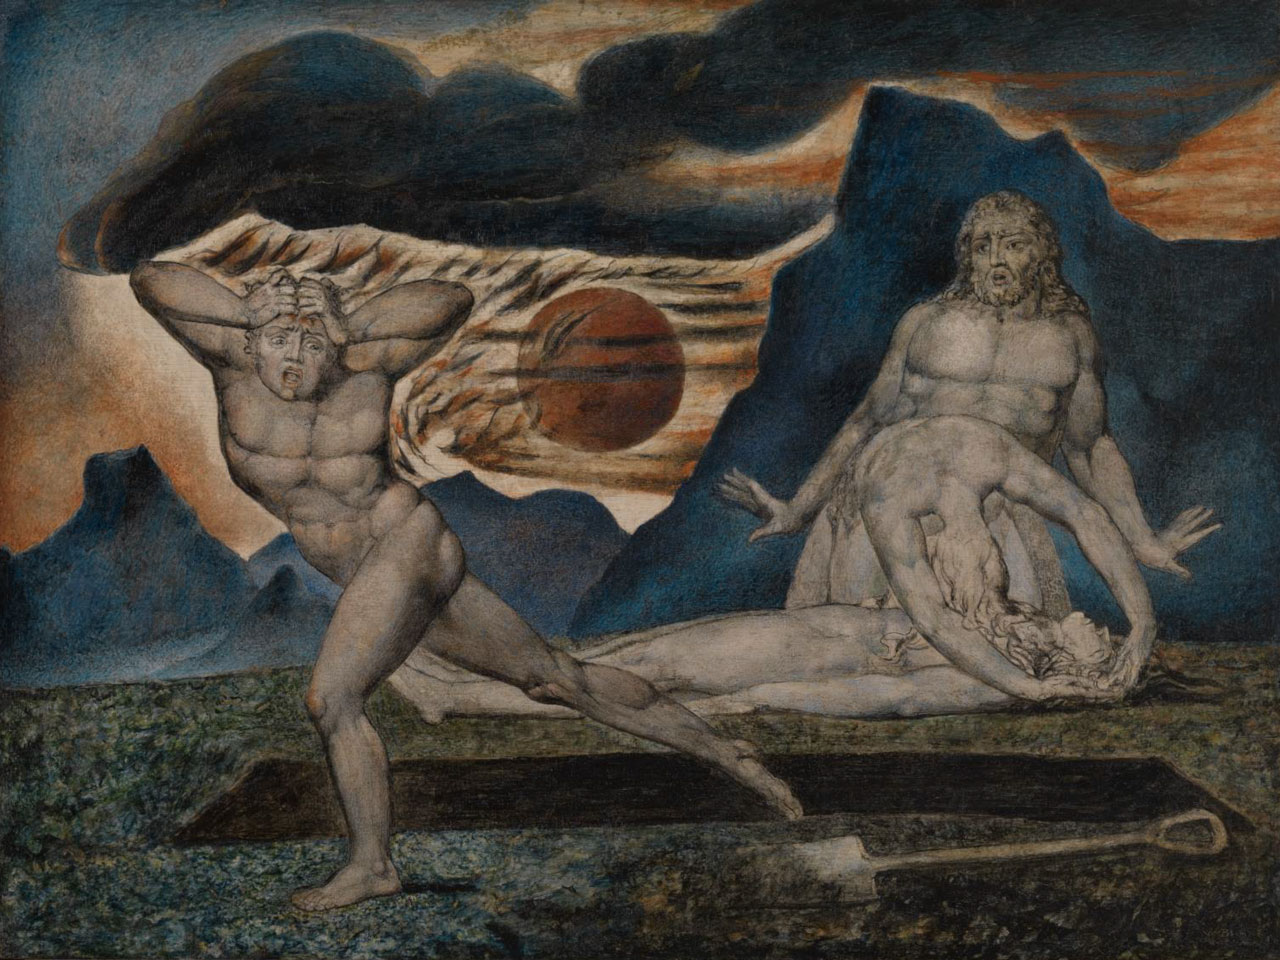 william blakes revolutionary life and works William blake is today recognised as a highly original and important poet in english literature, as well as a revolutionary and visionary artist this, however, was not the case at.